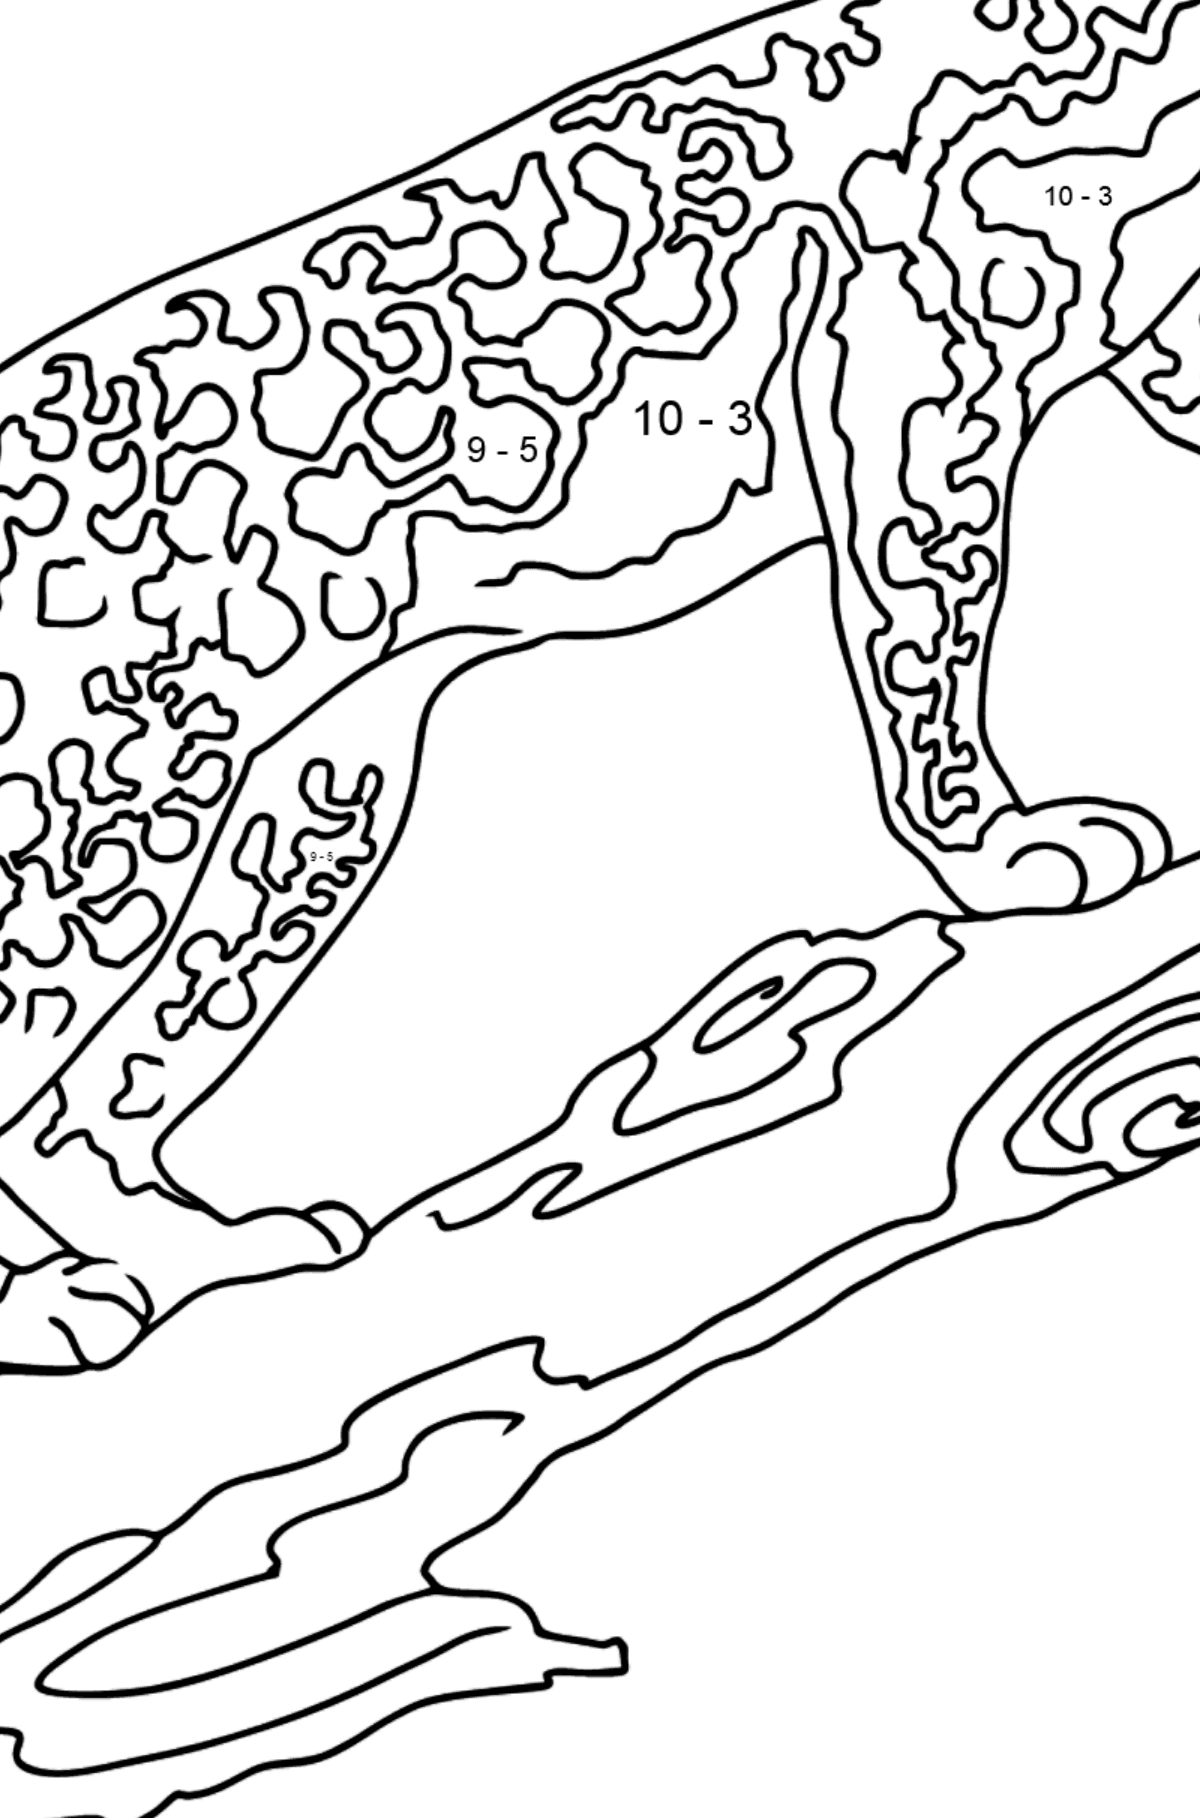 Coloring Page - A Leopard is Getting Ready for a Jump - Math Coloring - Subtraction for Kids